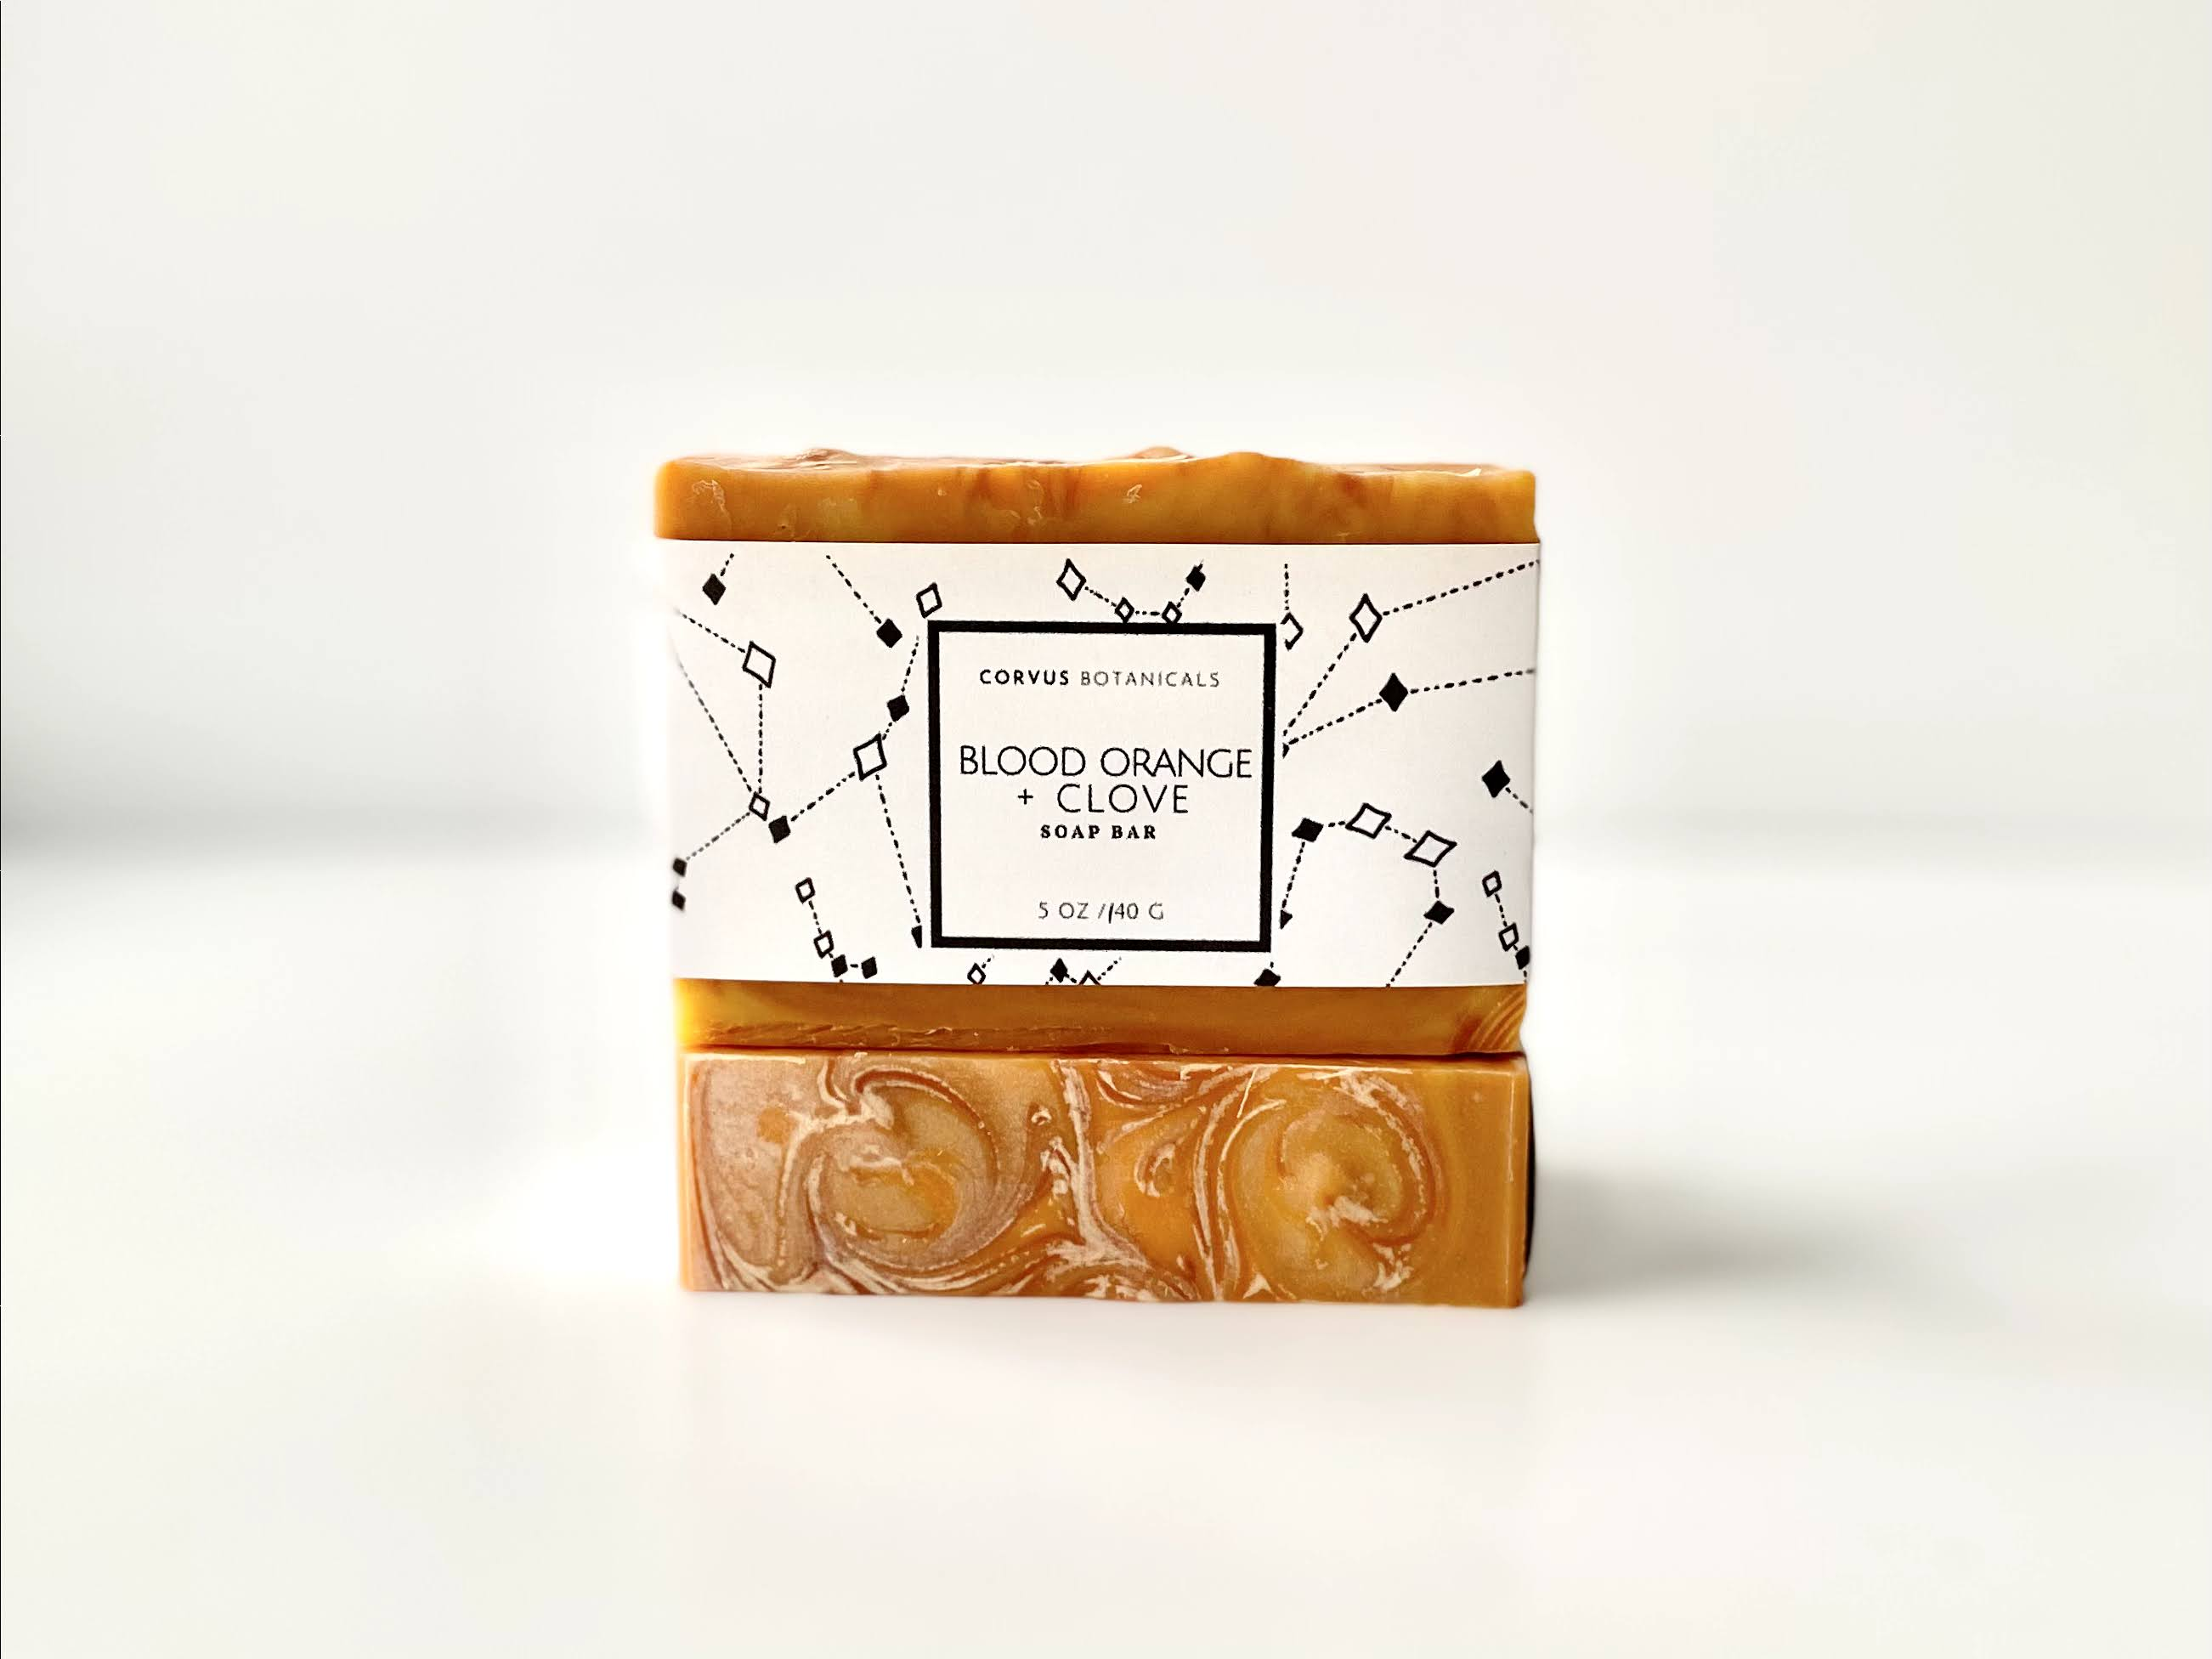 Blood Orange + Clove Soap - Corvus Botanicals